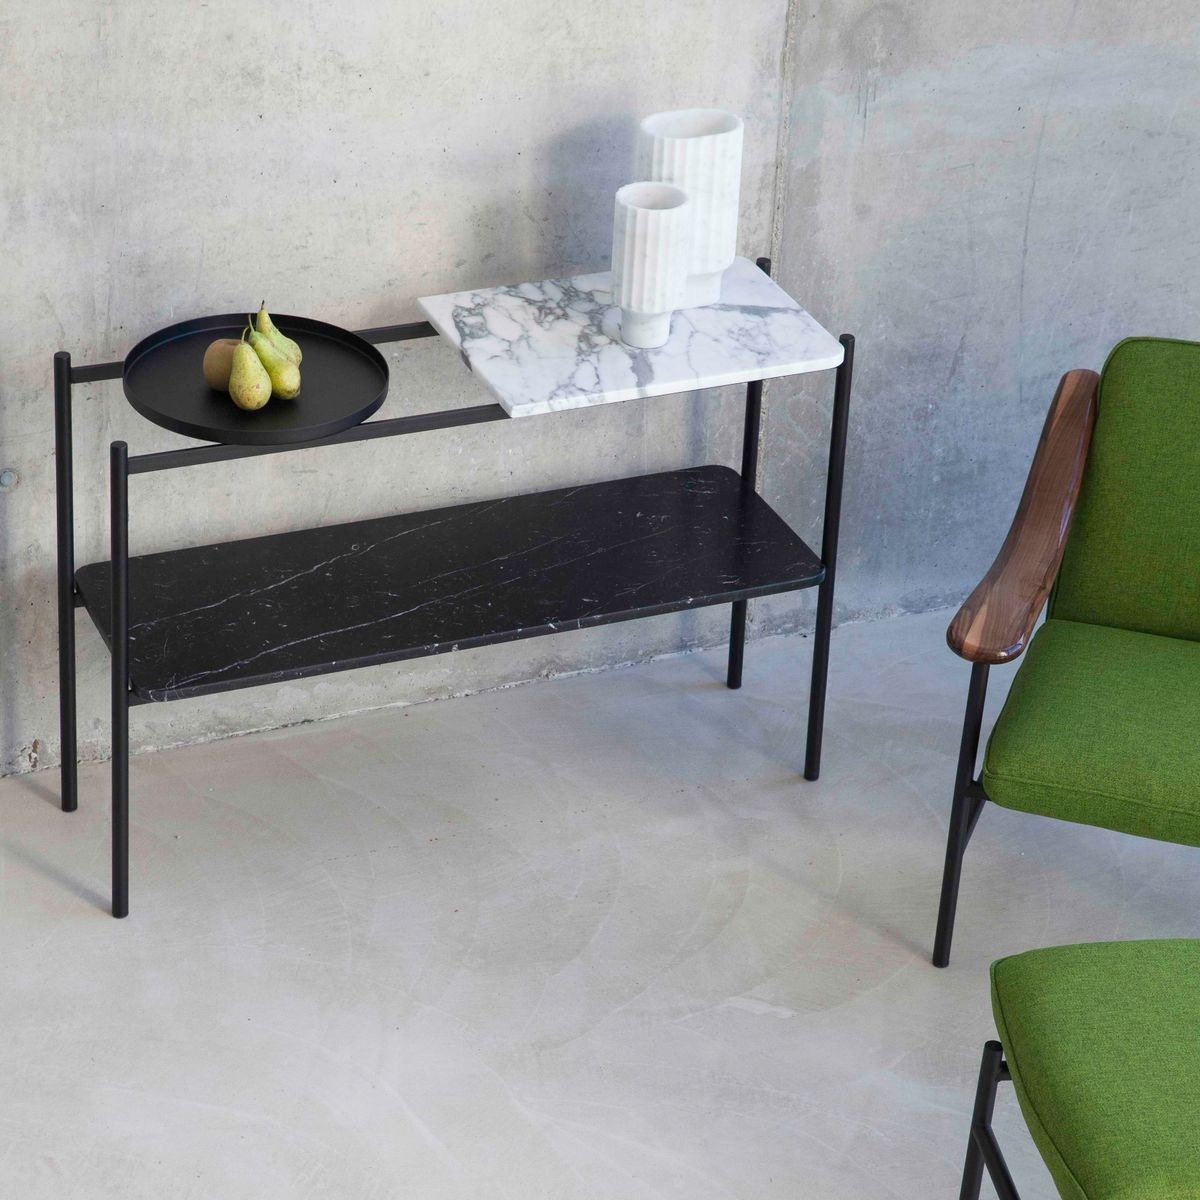 mesa consola cl sica series bagn res de sylvain willenz para versant edition en venta en pamono. Black Bedroom Furniture Sets. Home Design Ideas